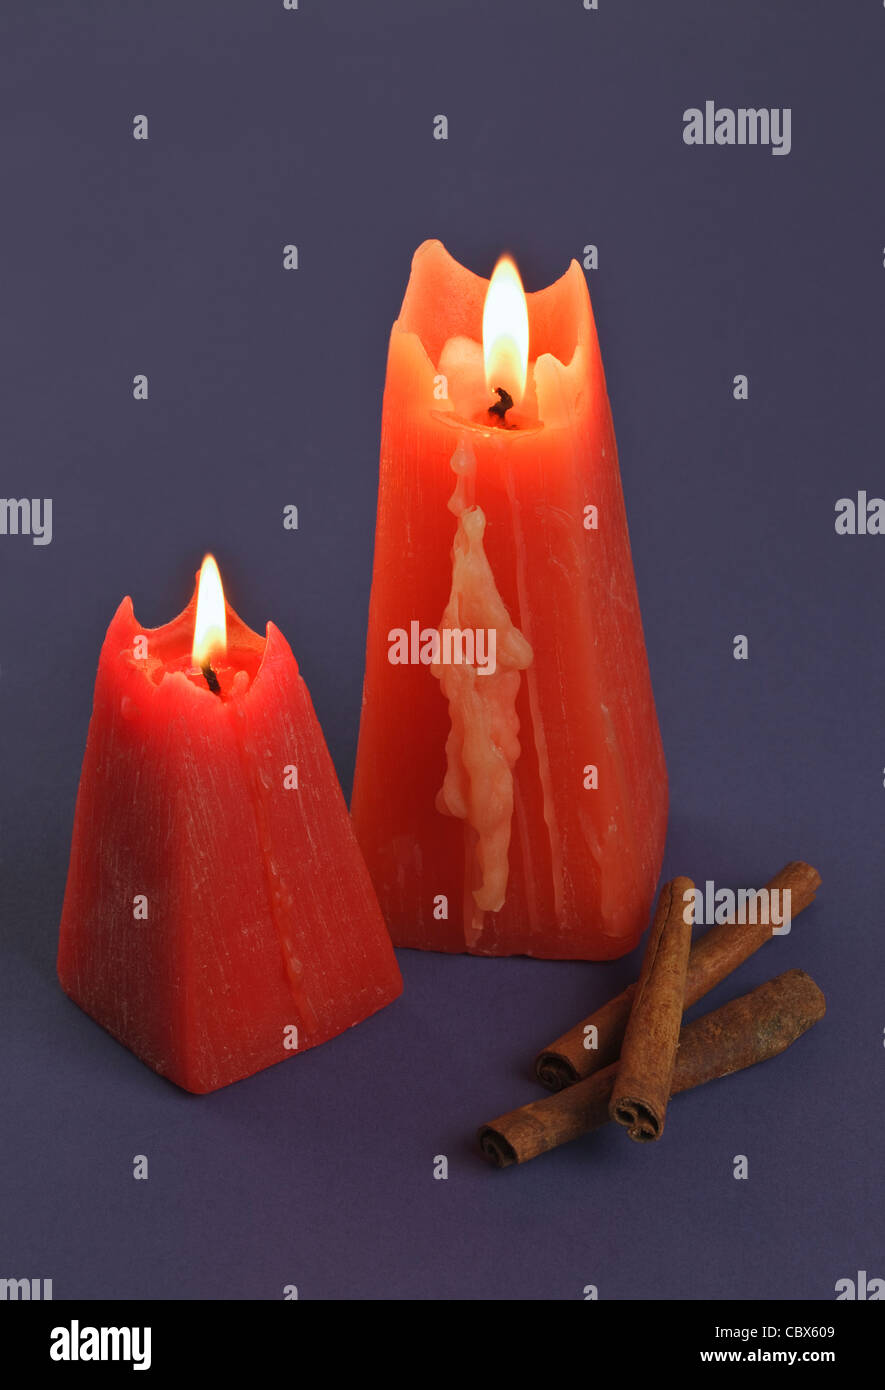 Two burning red Candles with Cinnamon sticks - Stock Image